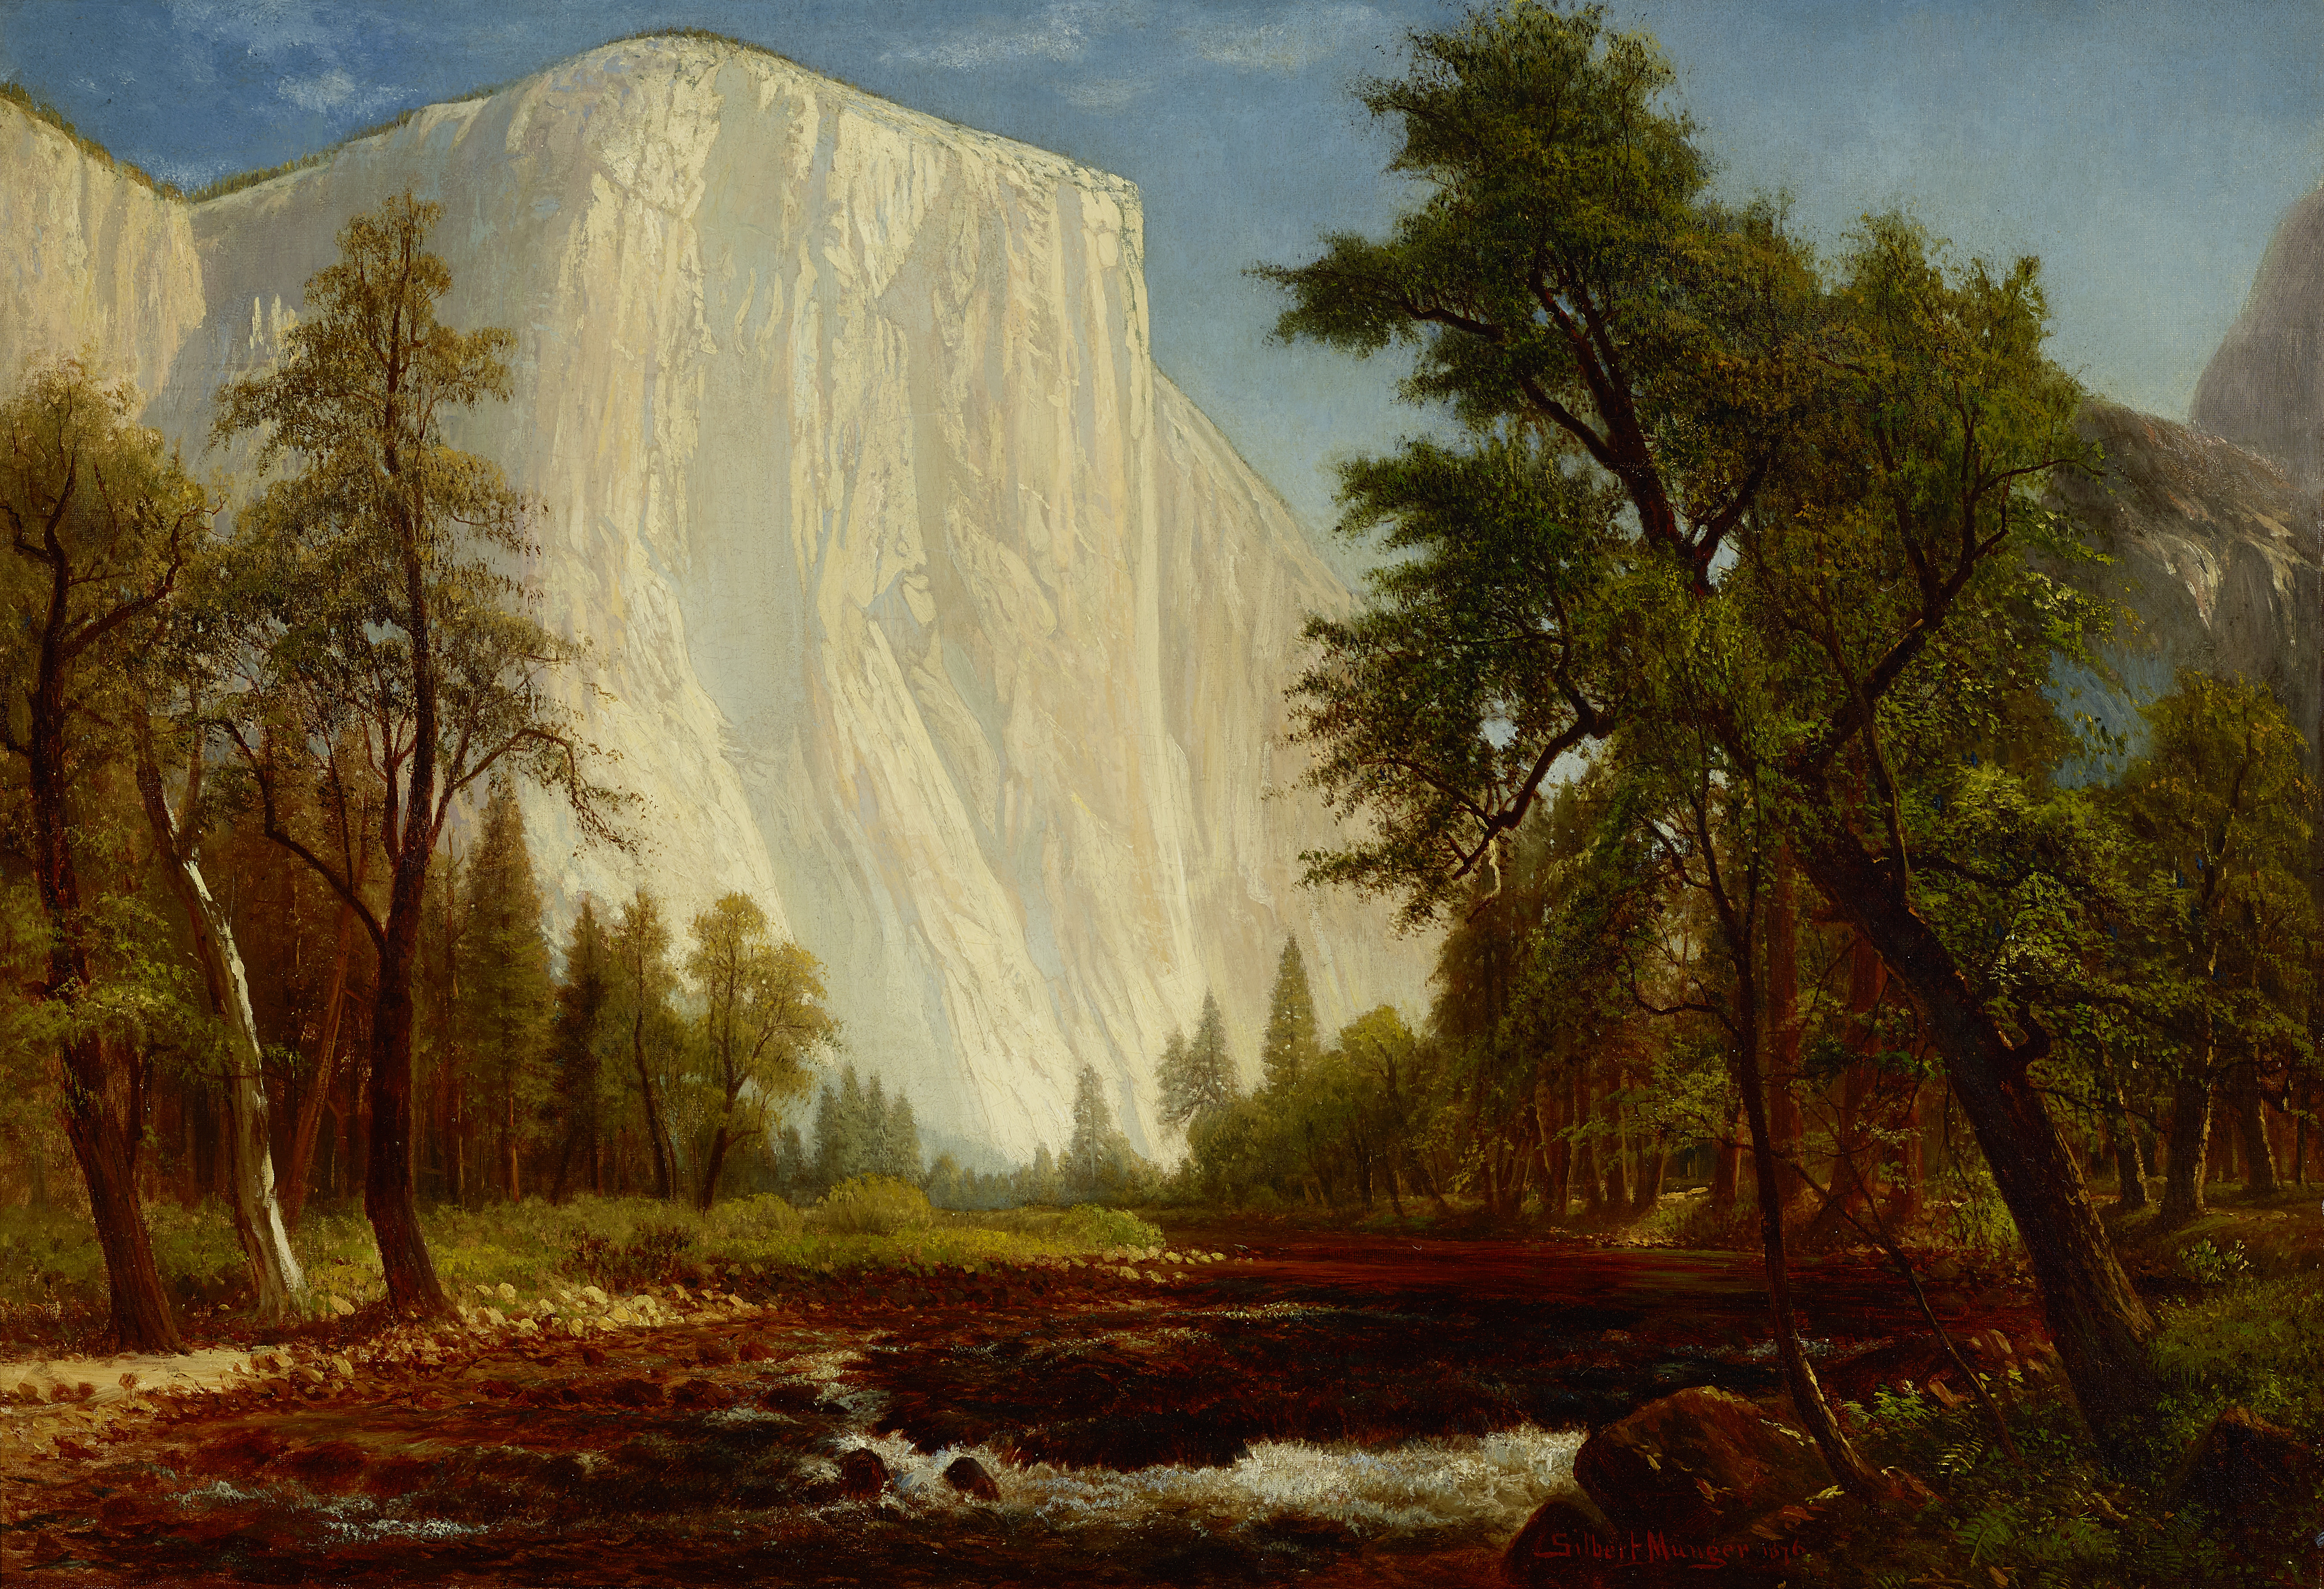 El Capitan in a Gathering Storm, by Gilbert Munger, painted in 1876.